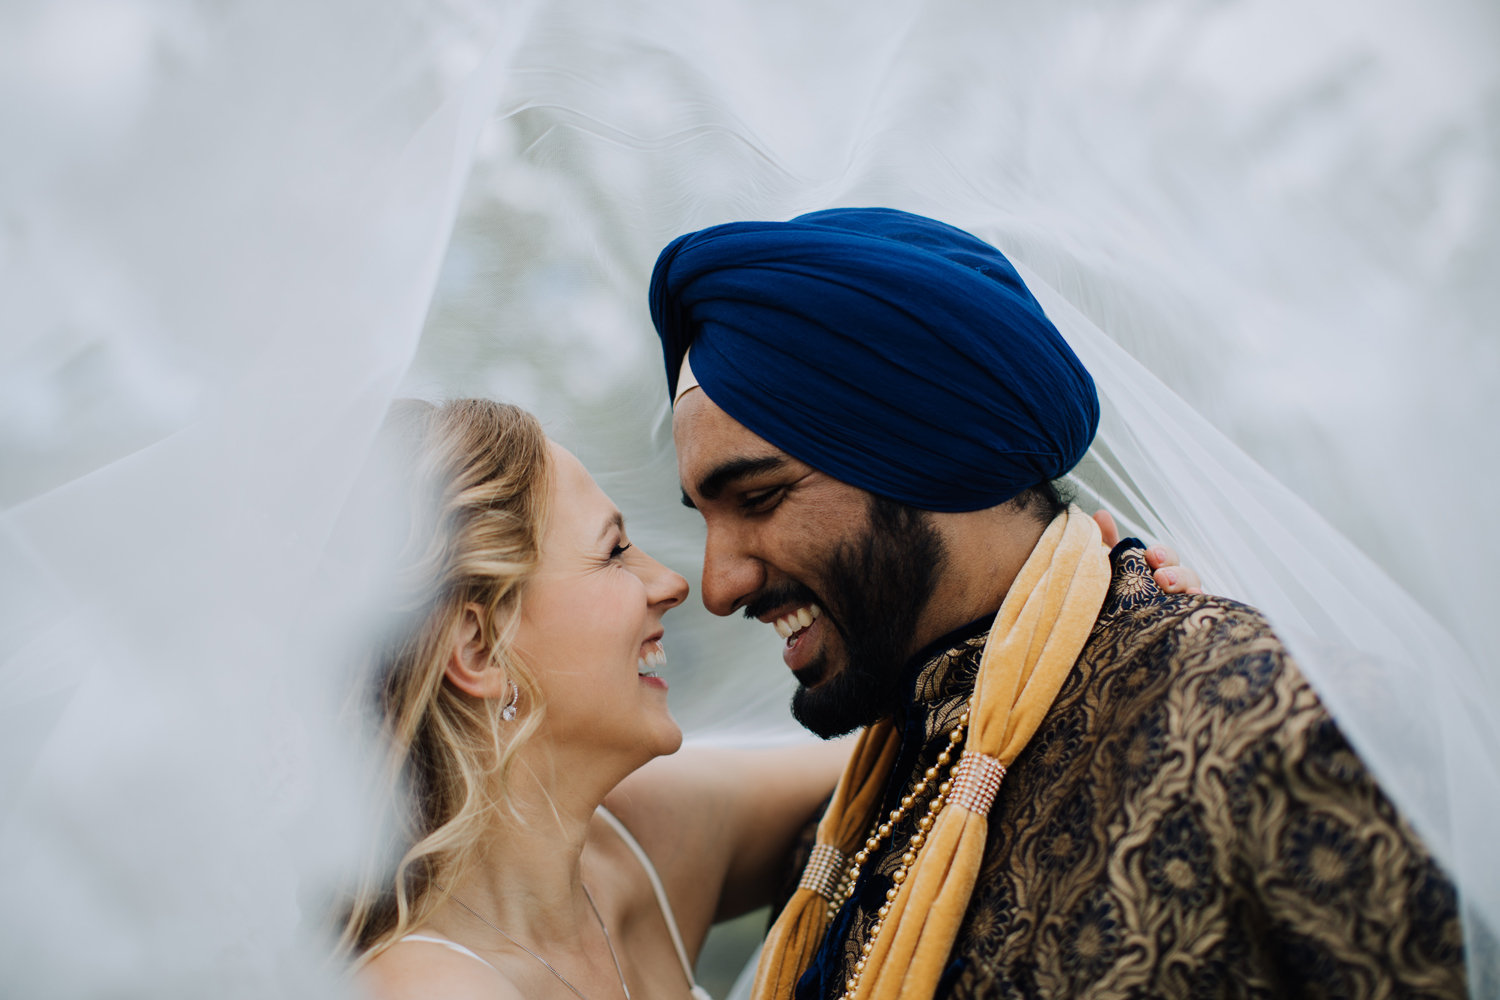 Portait of bride and groom. fusion wedding. Groom in traditional Sikh attire